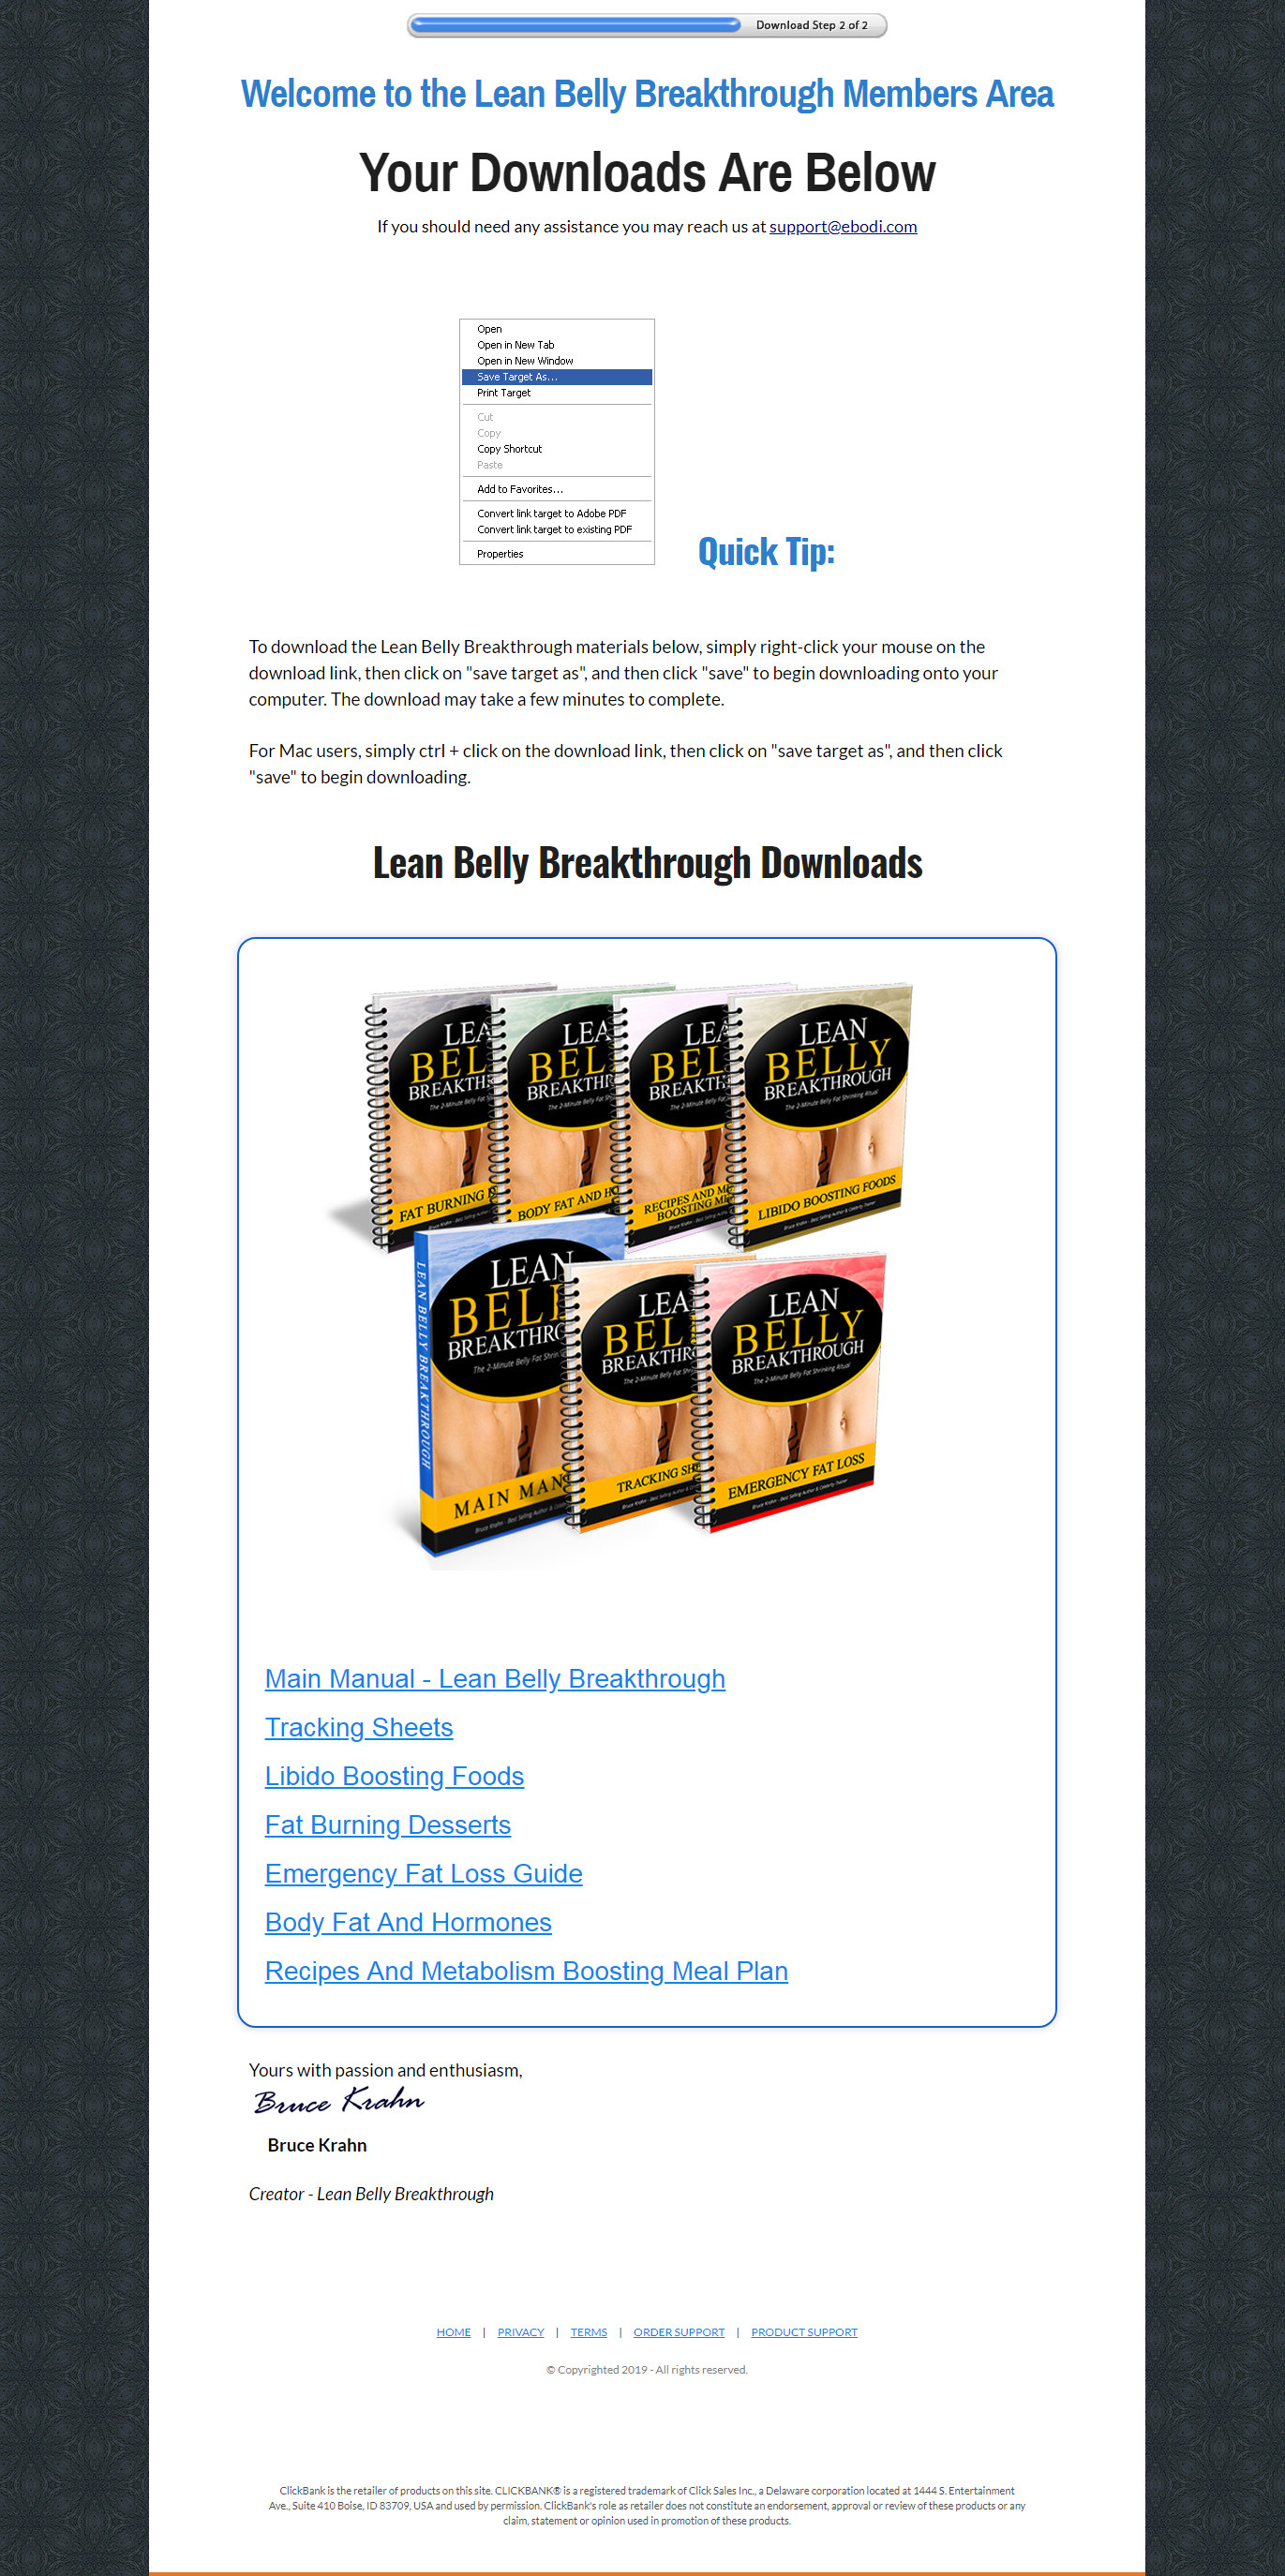 Lean Belly Breakthrough's Download Page